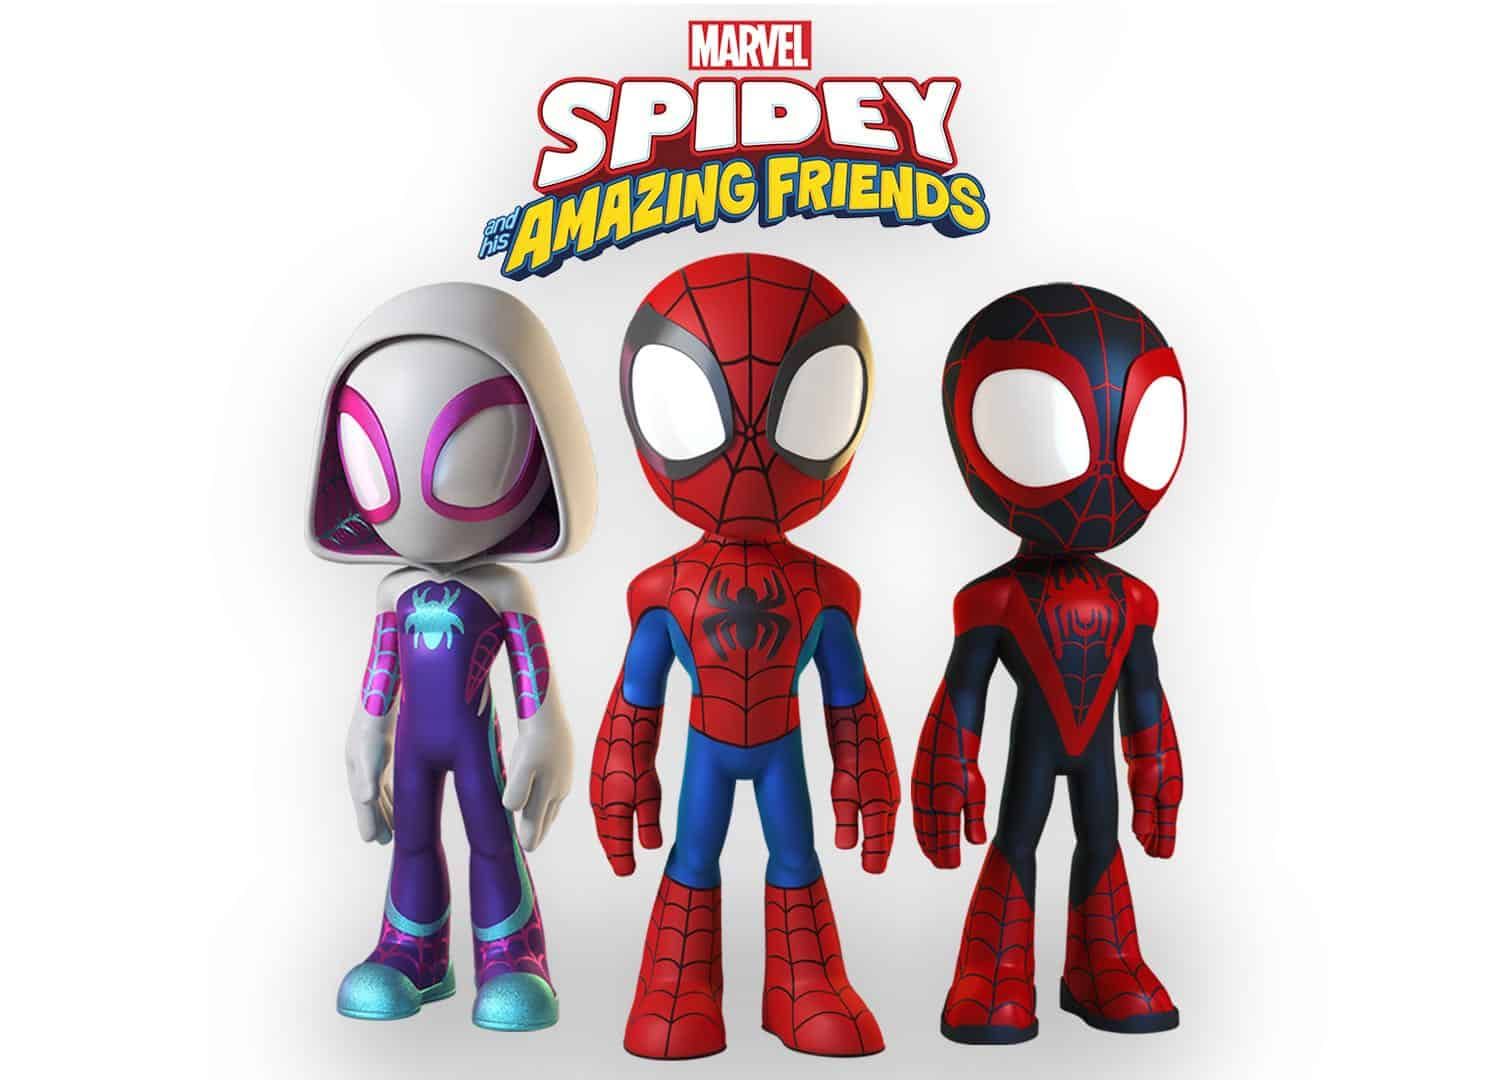 Marvels Spidey and His Amazing Friends